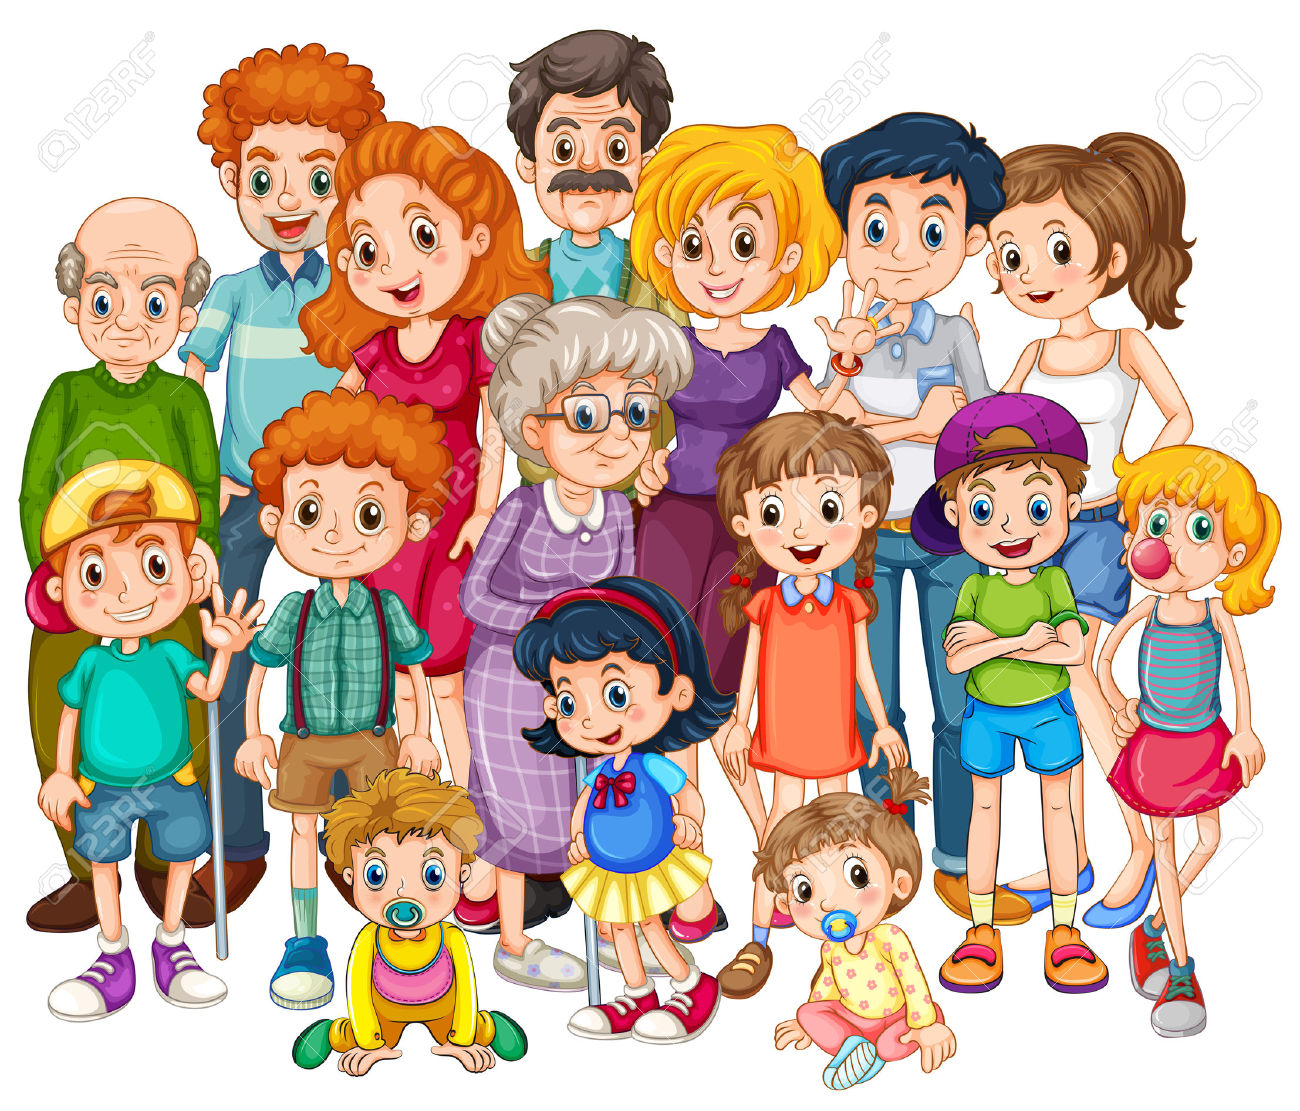 Larger clipart family picnic Extended clipart Family Big collection